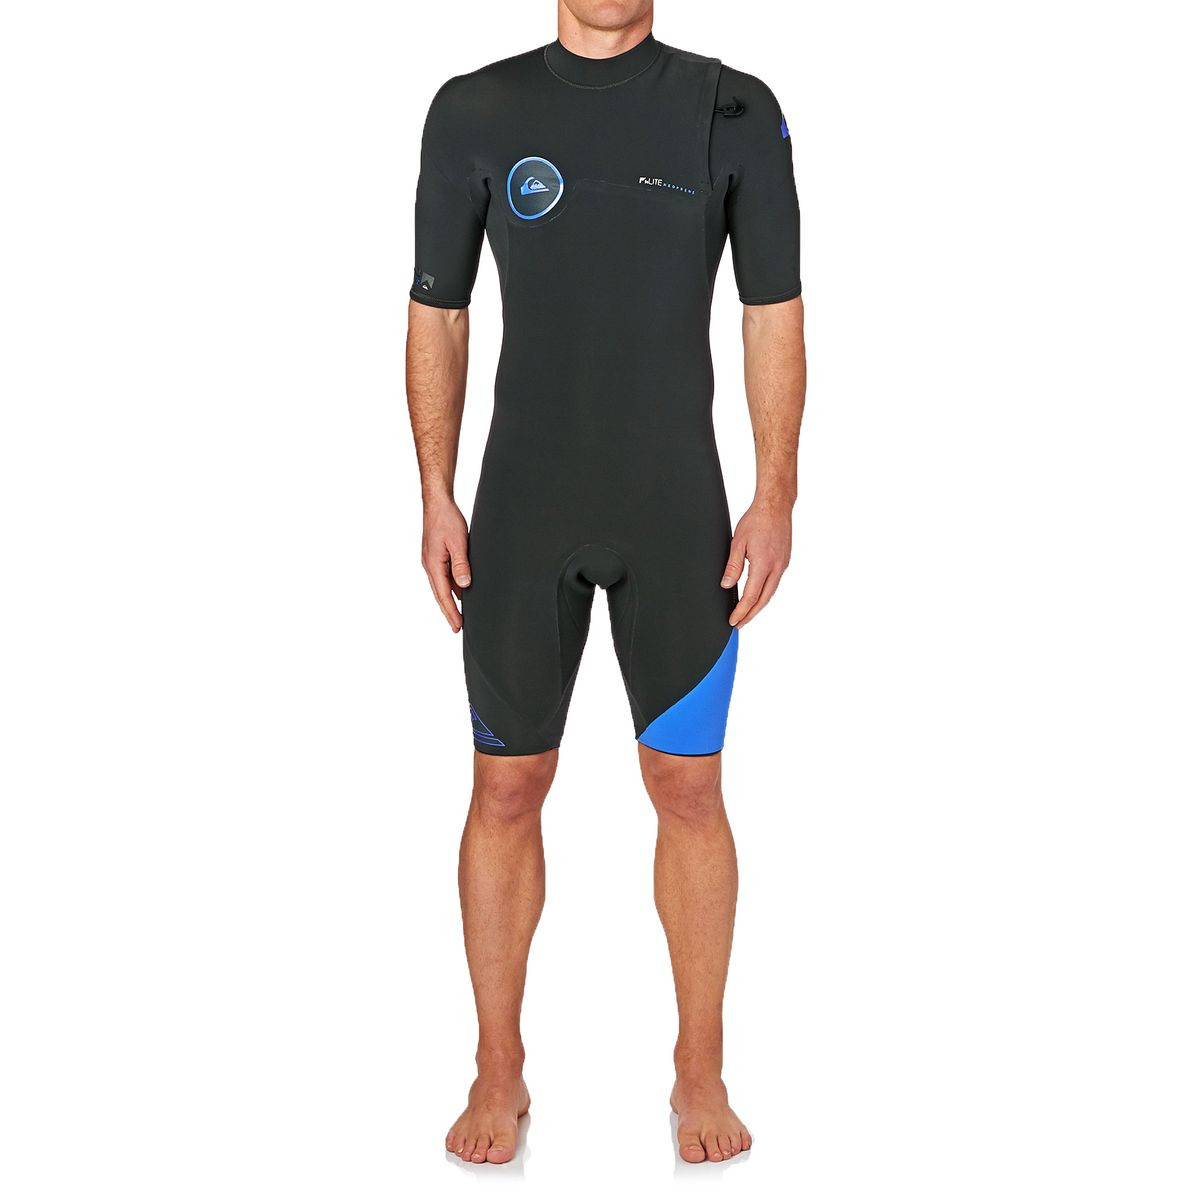 Quiksilver Syncro 2mm 2017 Zipperless Short Sleeve Shorty Wetsuit - Graphite/ Cyan